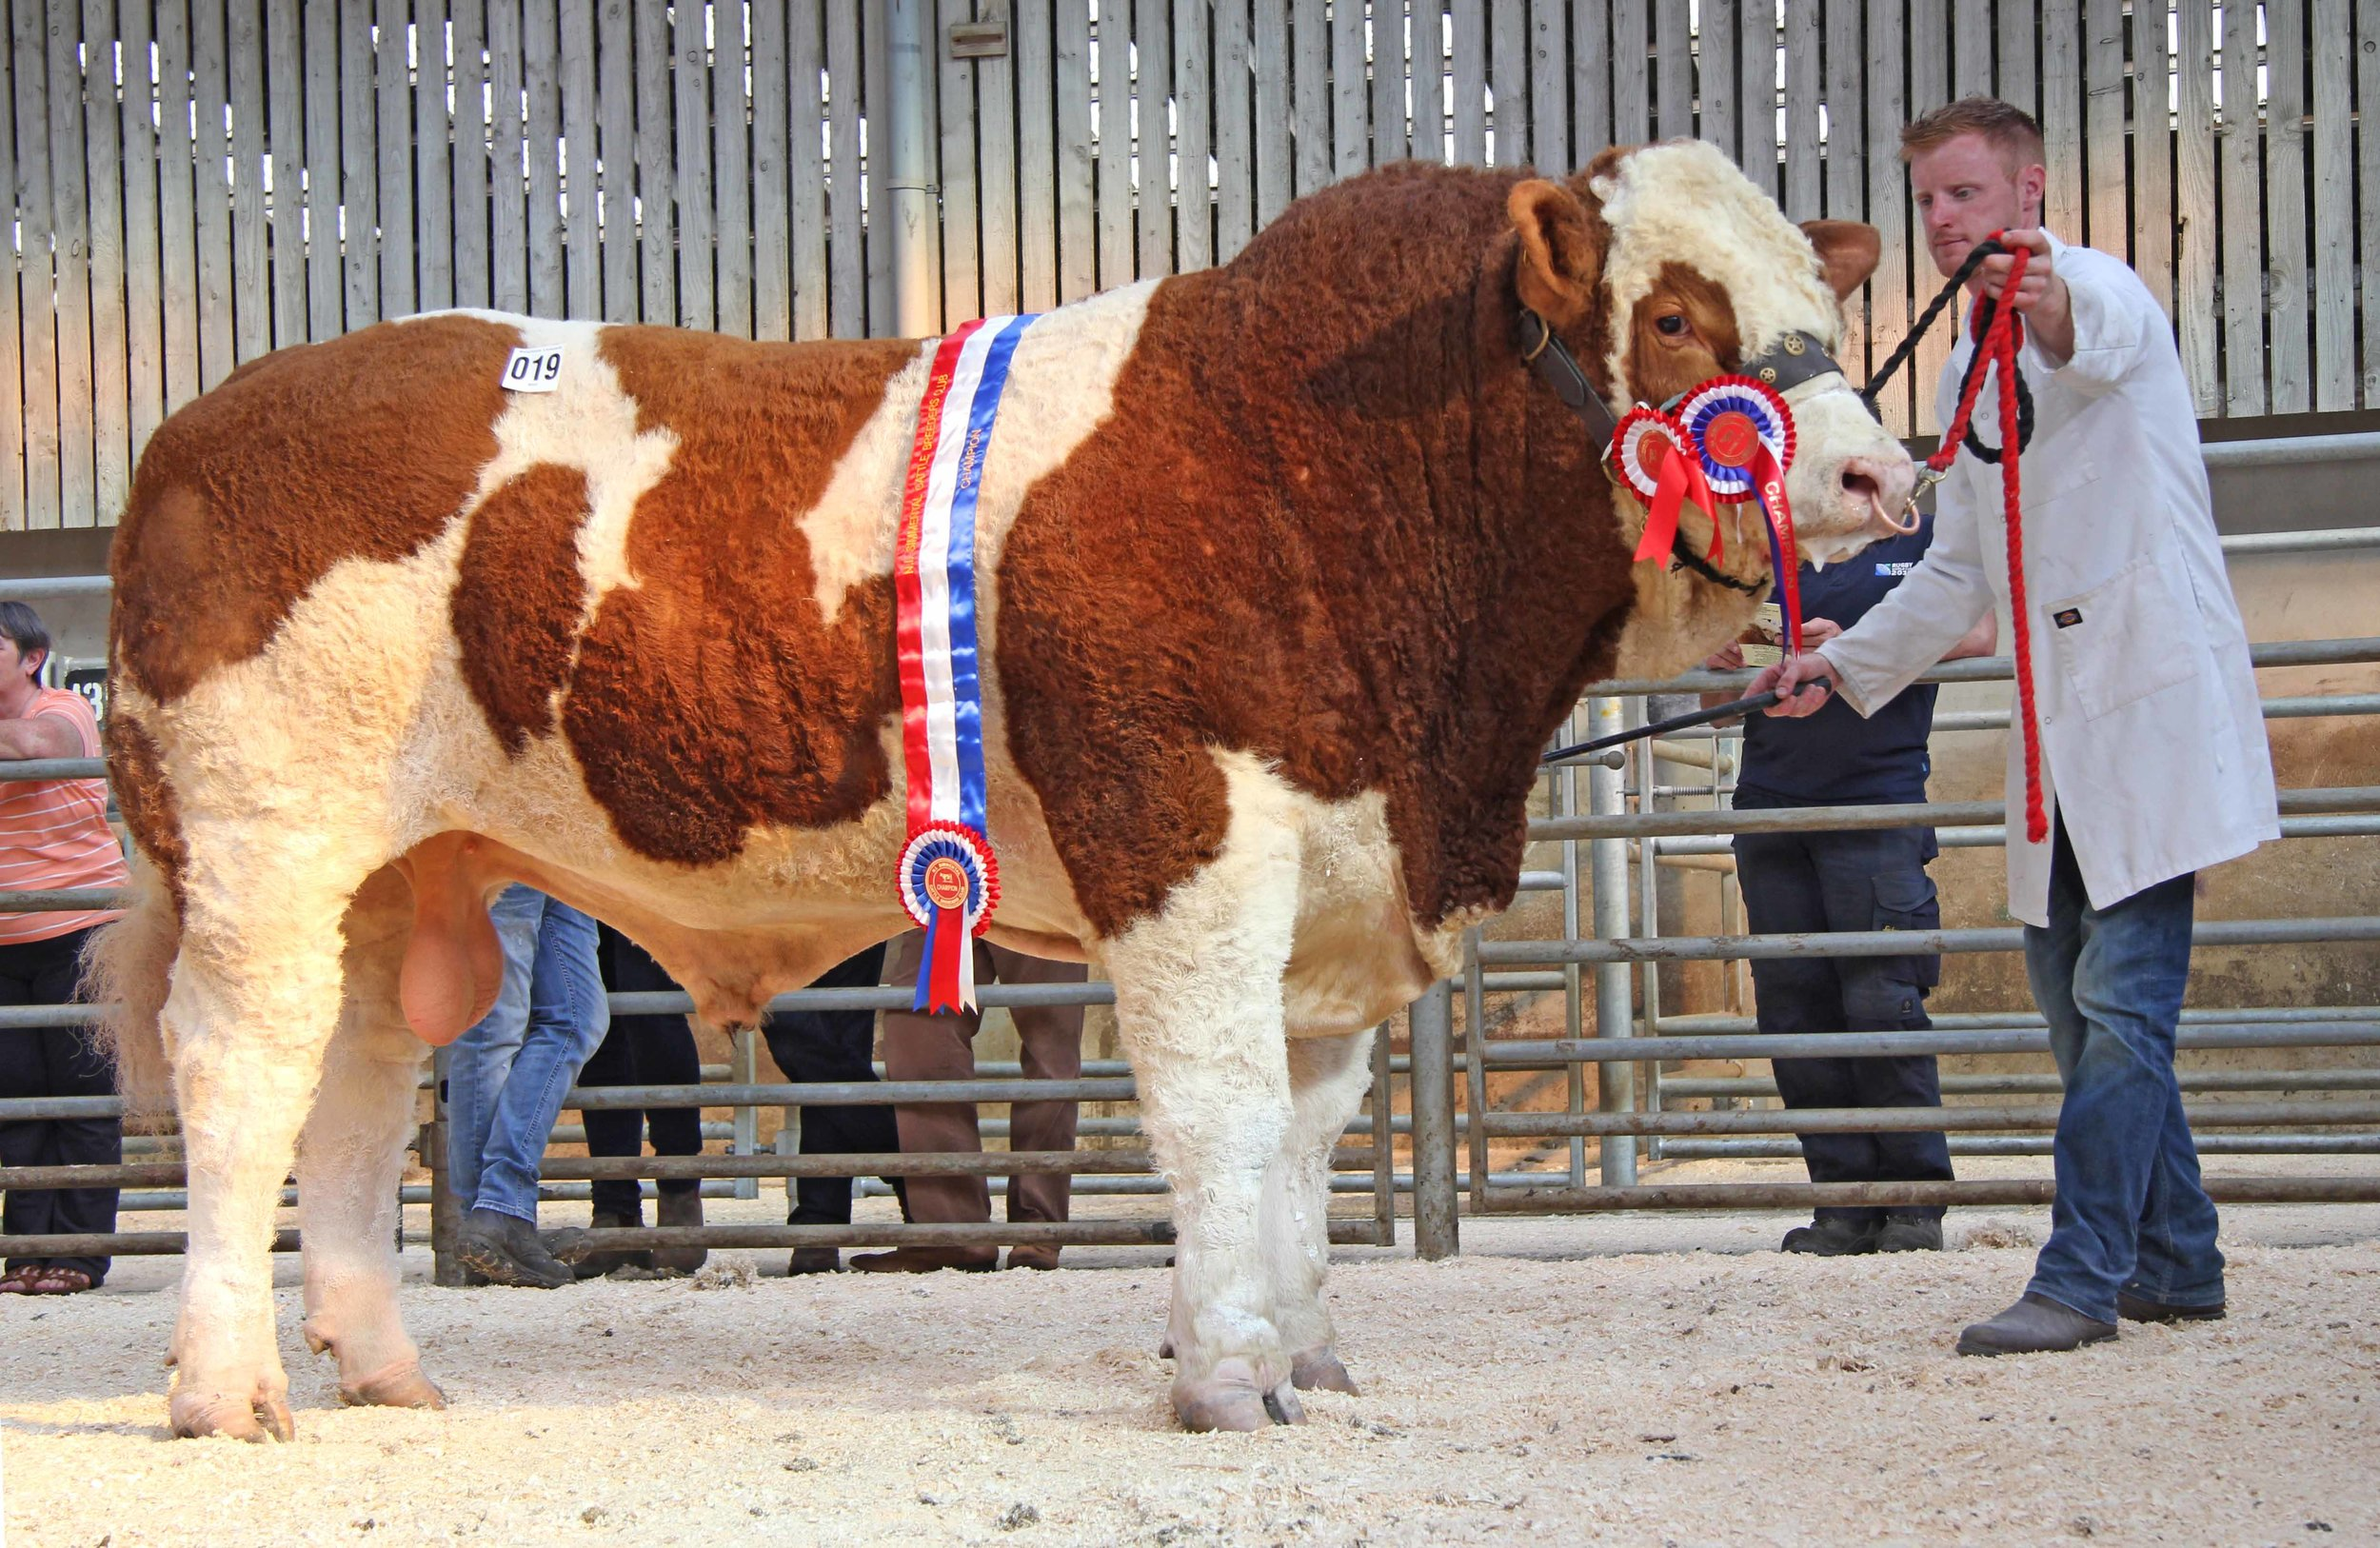 Male and supreme overall Simmental champion was Shacon Invincible bred by Brian Dooher, Donemana, and exhibited by Ritchie Devine.